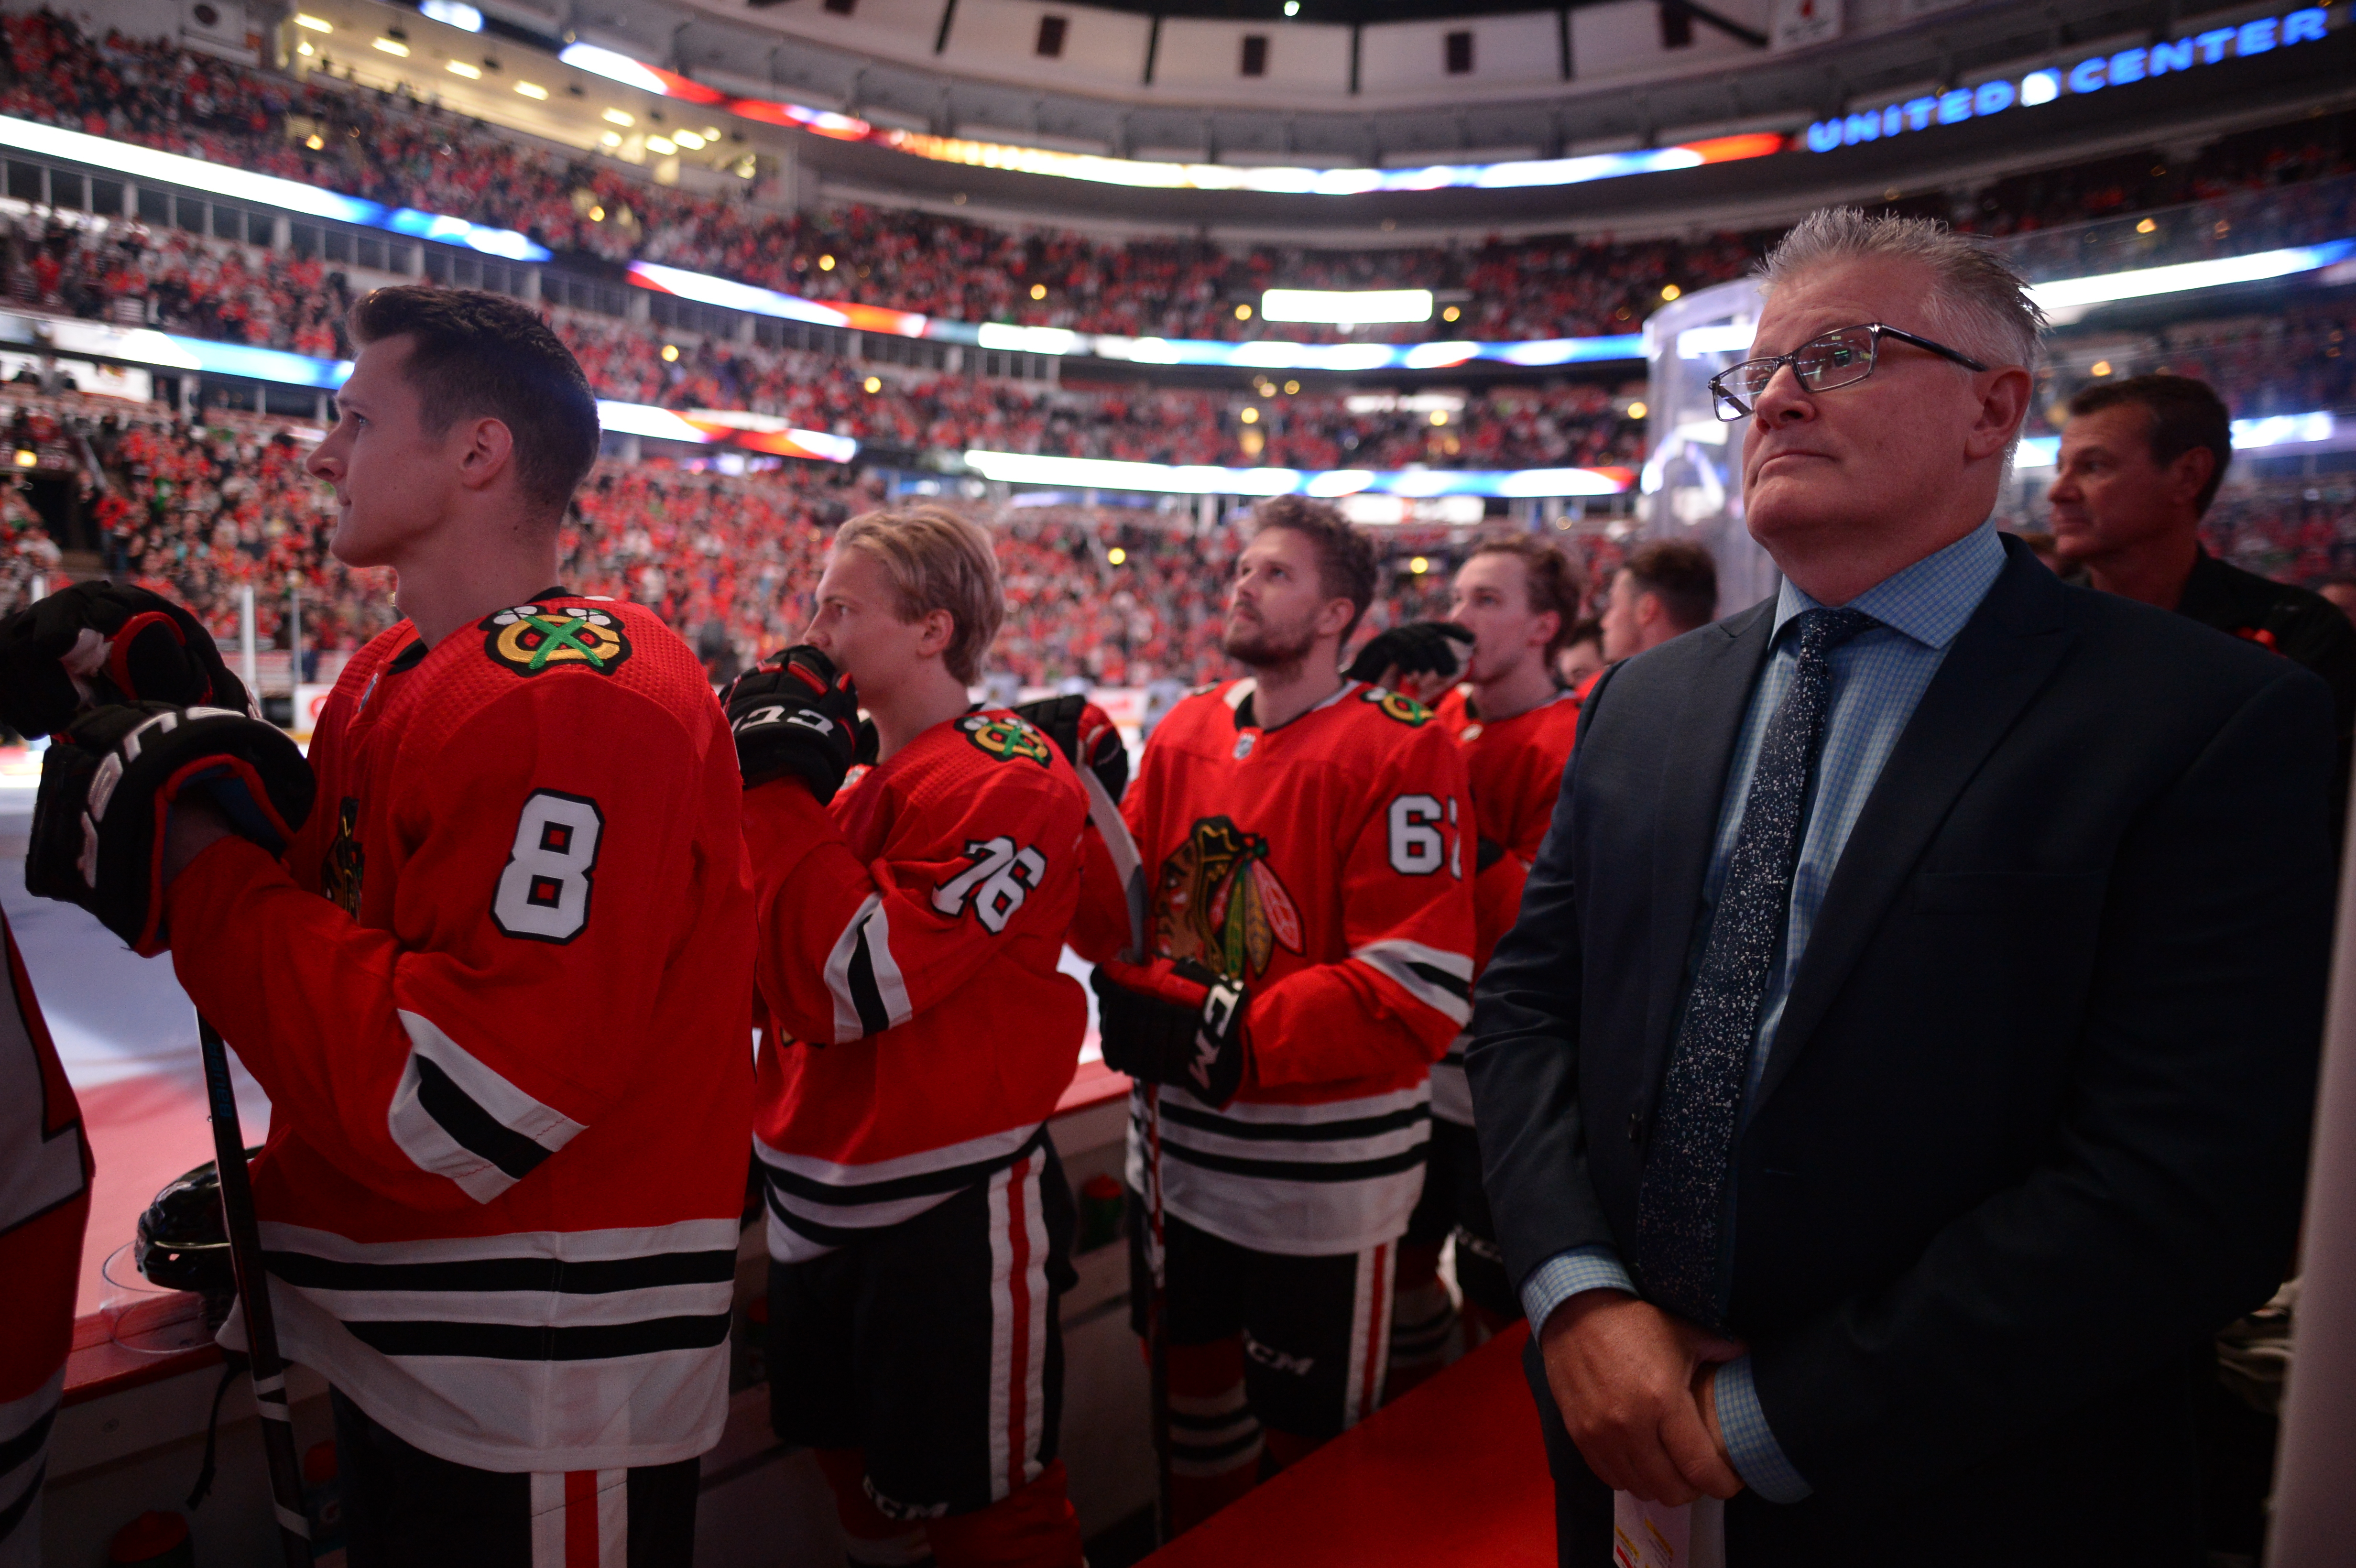 Marc Crawford, who debuted as a Blackhawks assistant this season, has been accused of physically abusing players on previous coaching stops.